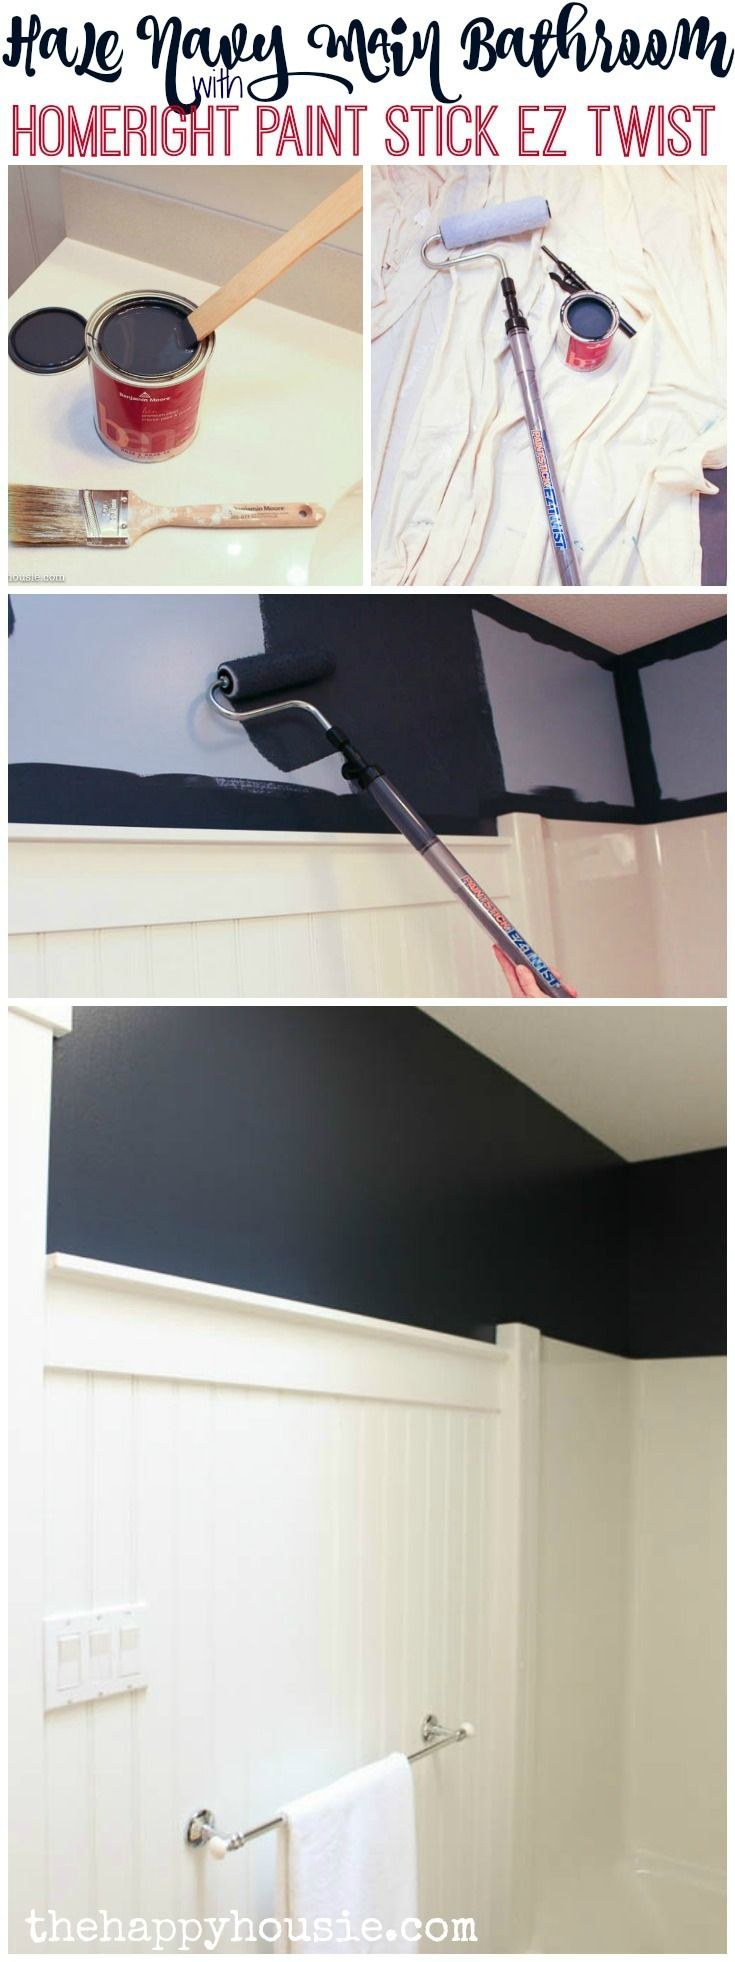 We transformed our main bathroom in no time at all with the HomeRight Paint Stick EZ Twist